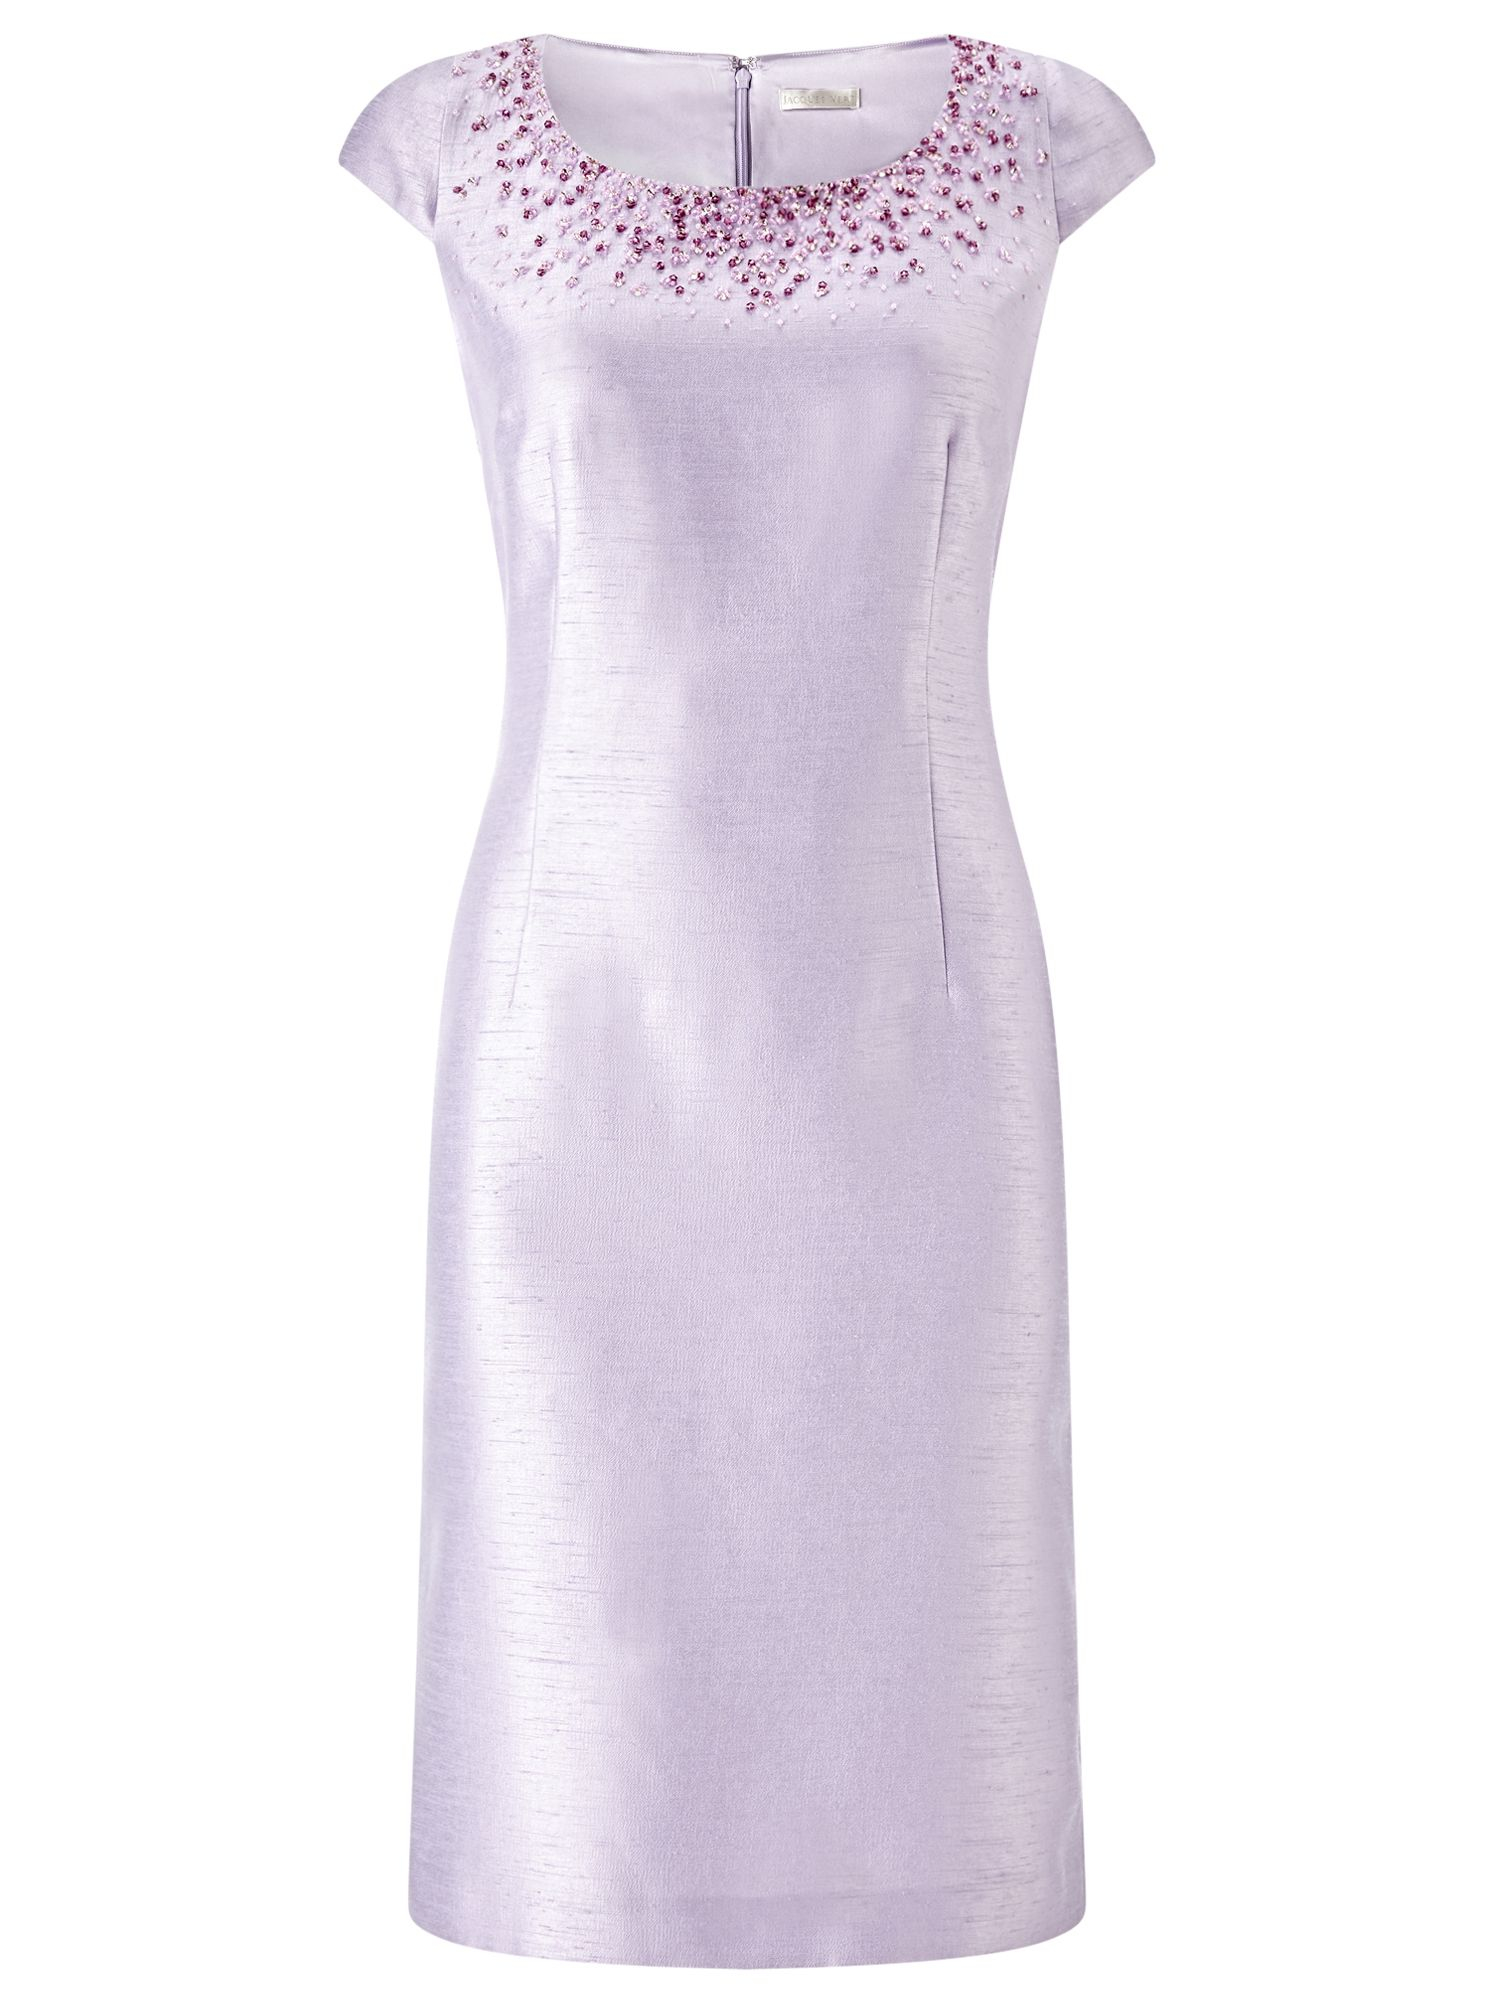 Jacques vert Bead Embellished Shift Dress in Purple